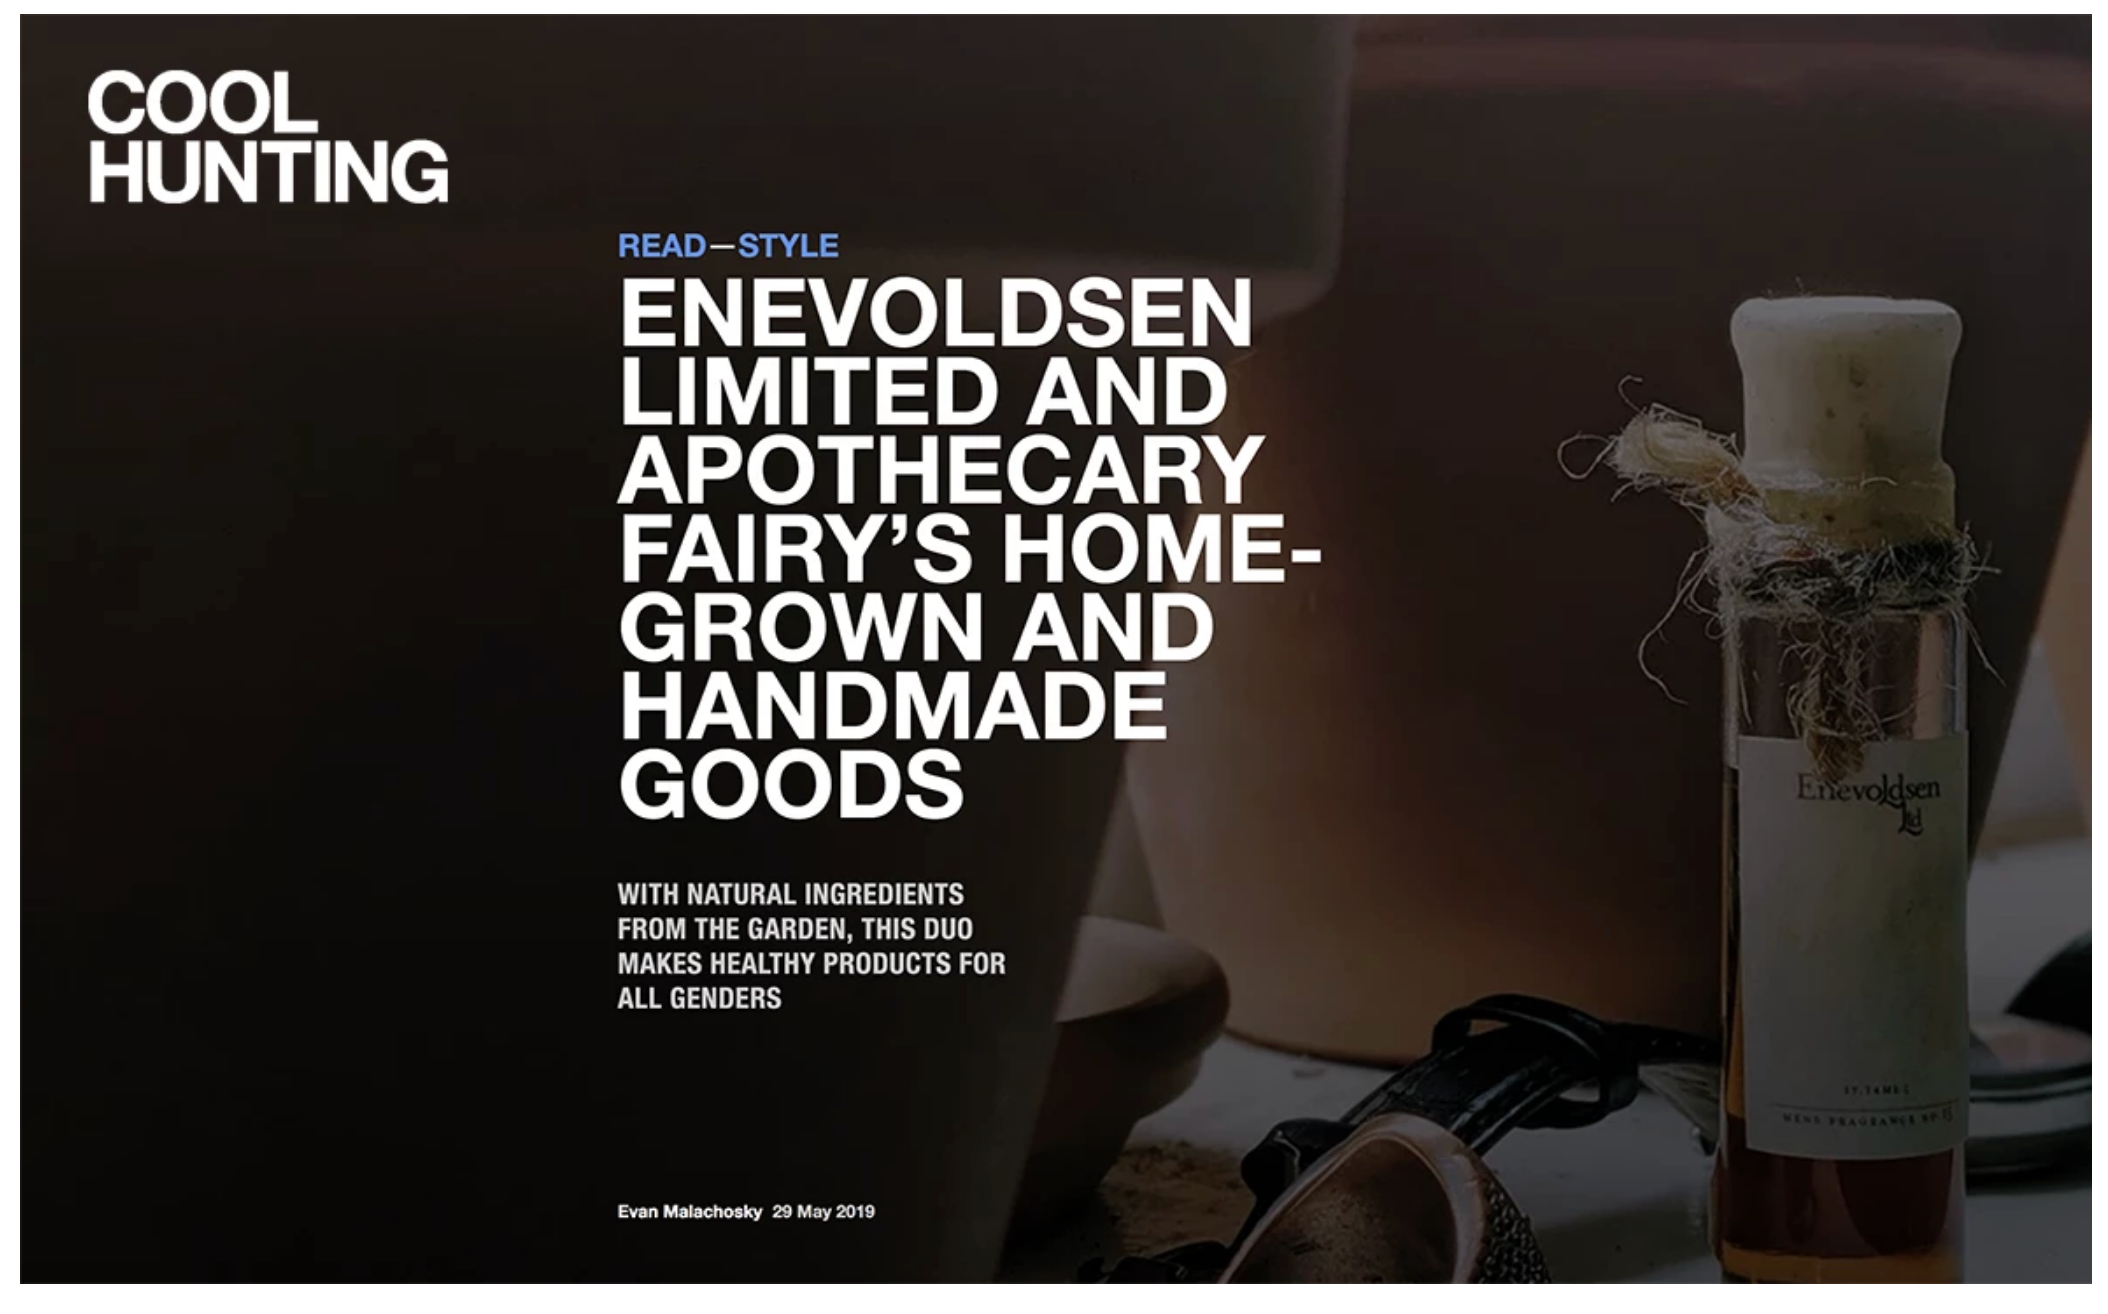 COOL HUNTING; Enevoldsen Limited & Apothecary Fairy Homegrown and Handmade Goods